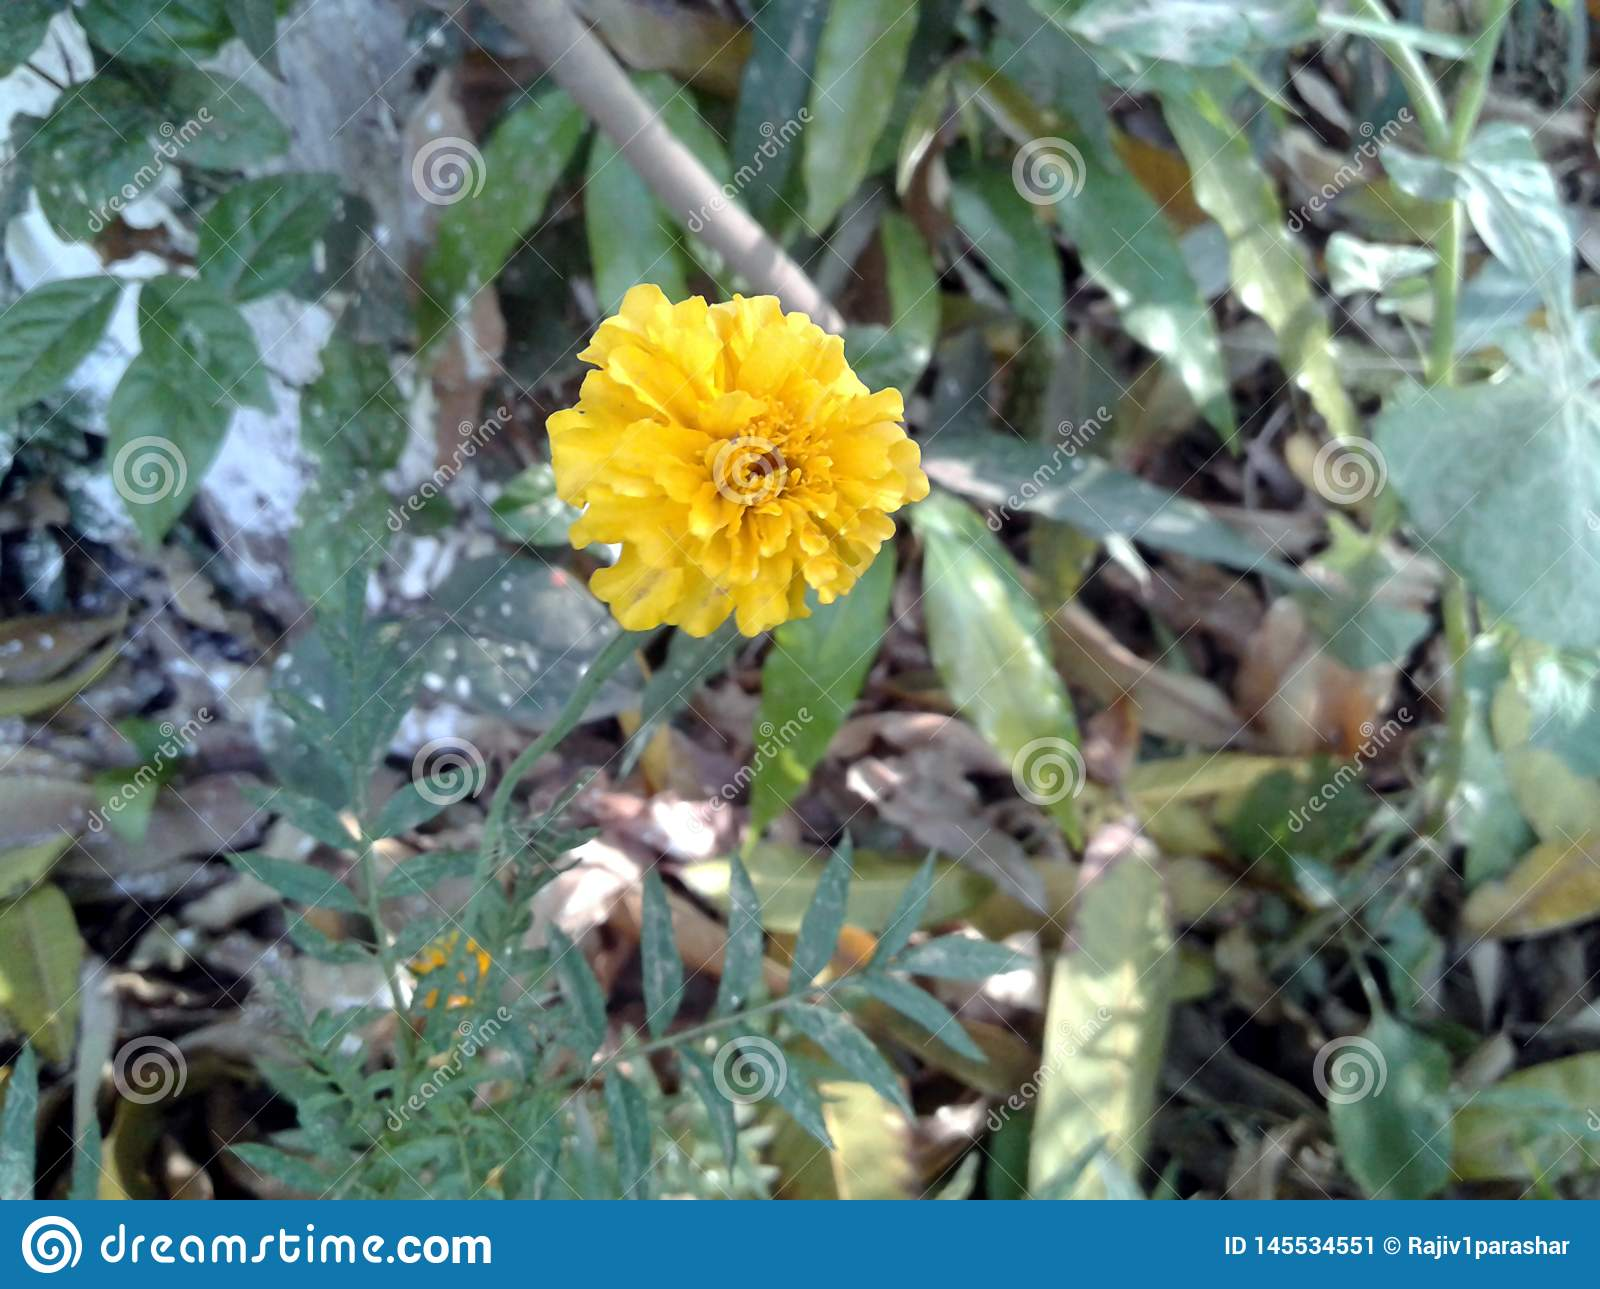 This is the image of yellow one marigold flower  with green leafs